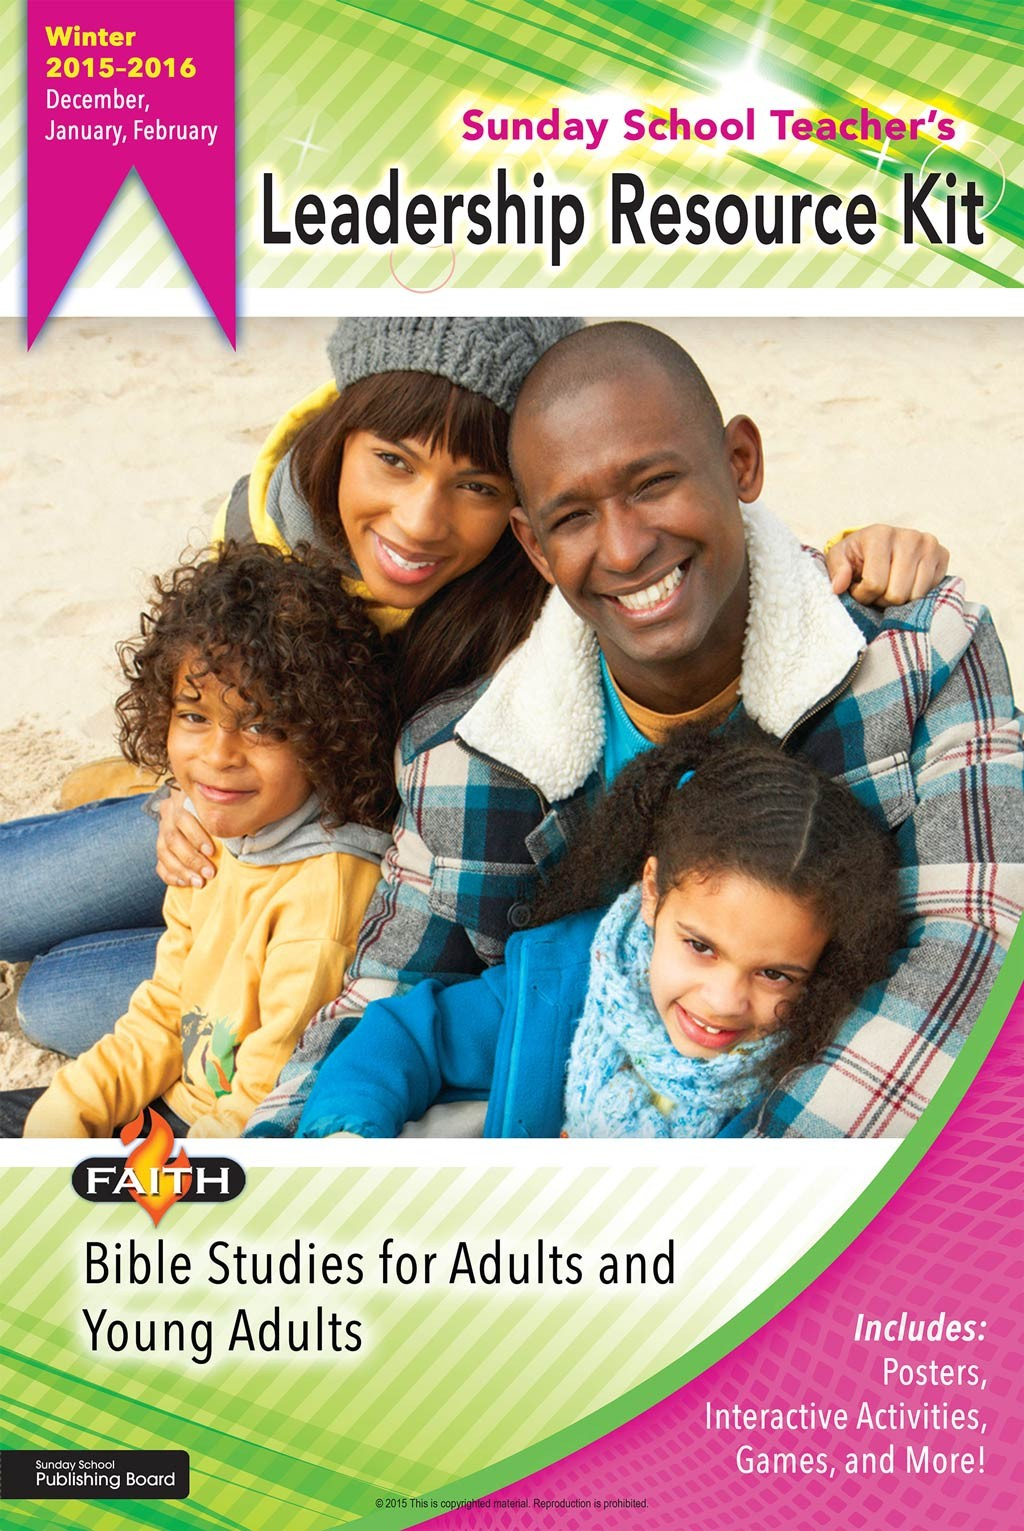 Sunday School Leadership Resource Kit - Adults & Young Adults